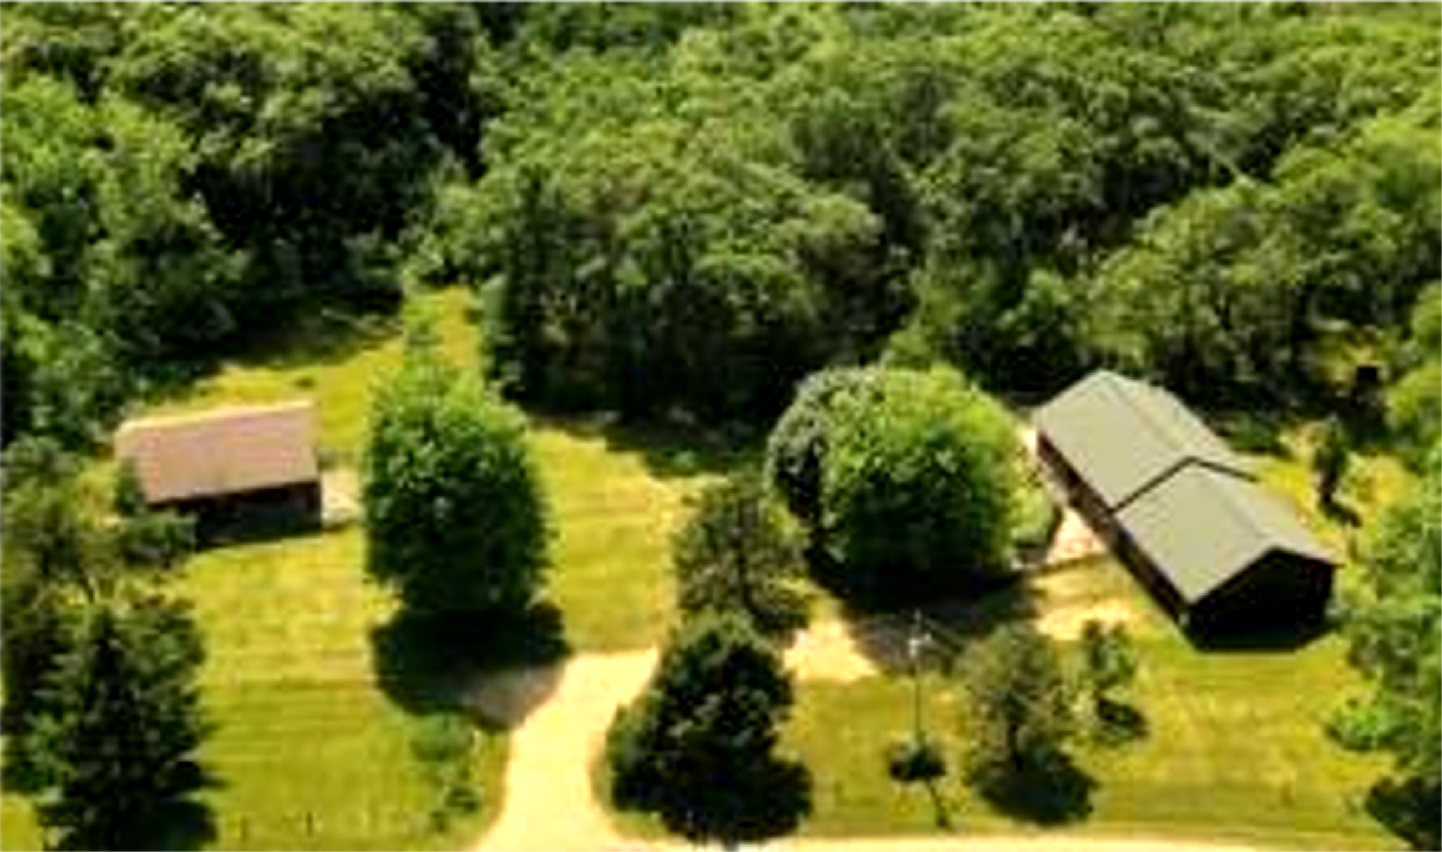 2 Log Homes for 1 Price in Galena IL